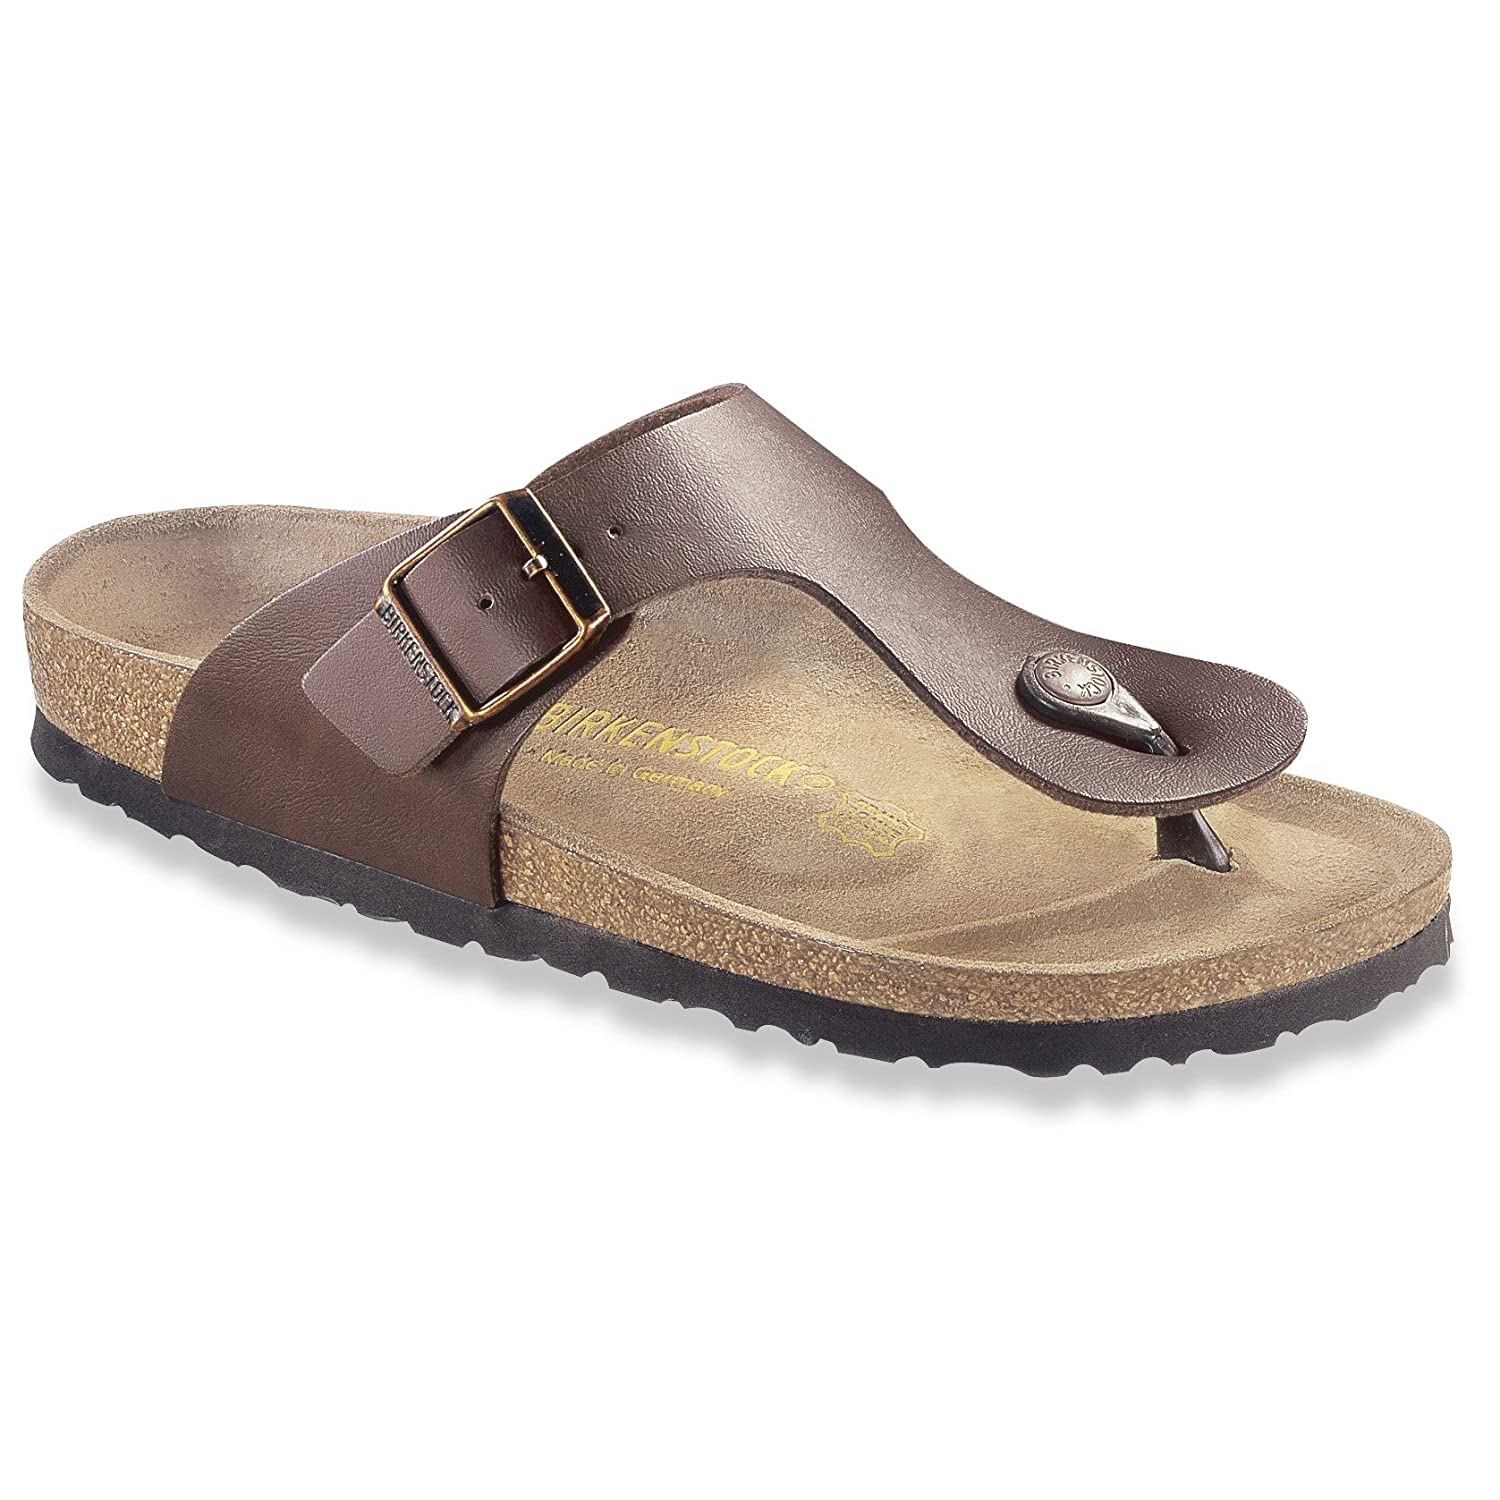 06376a910282 Birkenstock Ramses Mens Summer Sandal Brown 49  Amazon.co.uk  Shoes   Bags